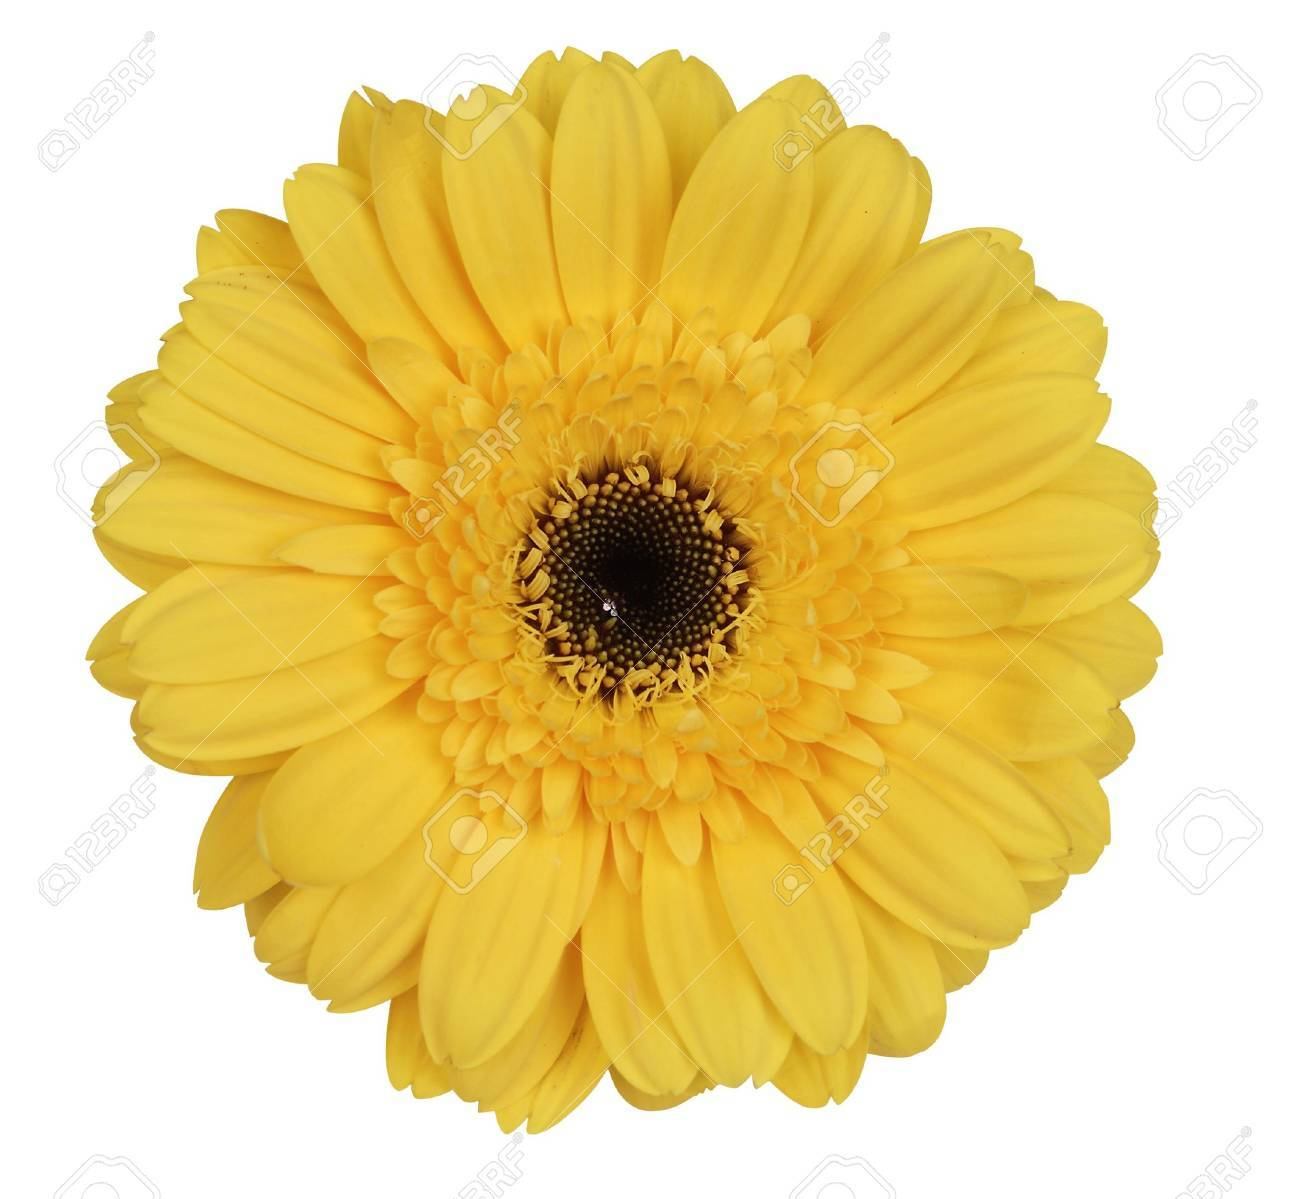 Yellow gerber daisy on white background Stock Photo - 7049611